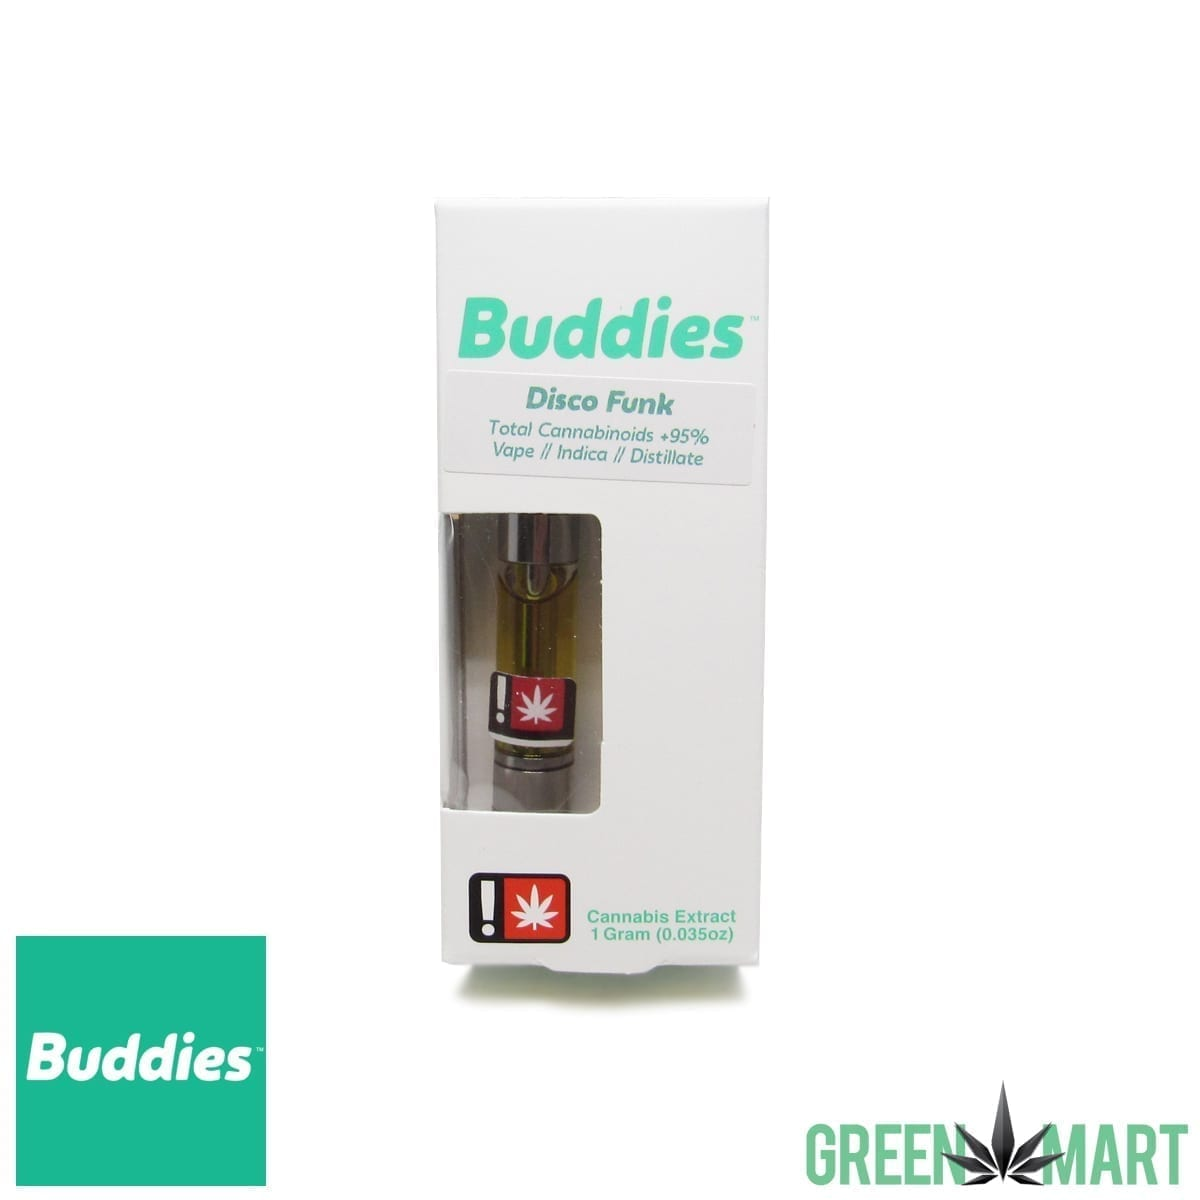 Buddies Brand Distillate Cartridge - Disco Funk